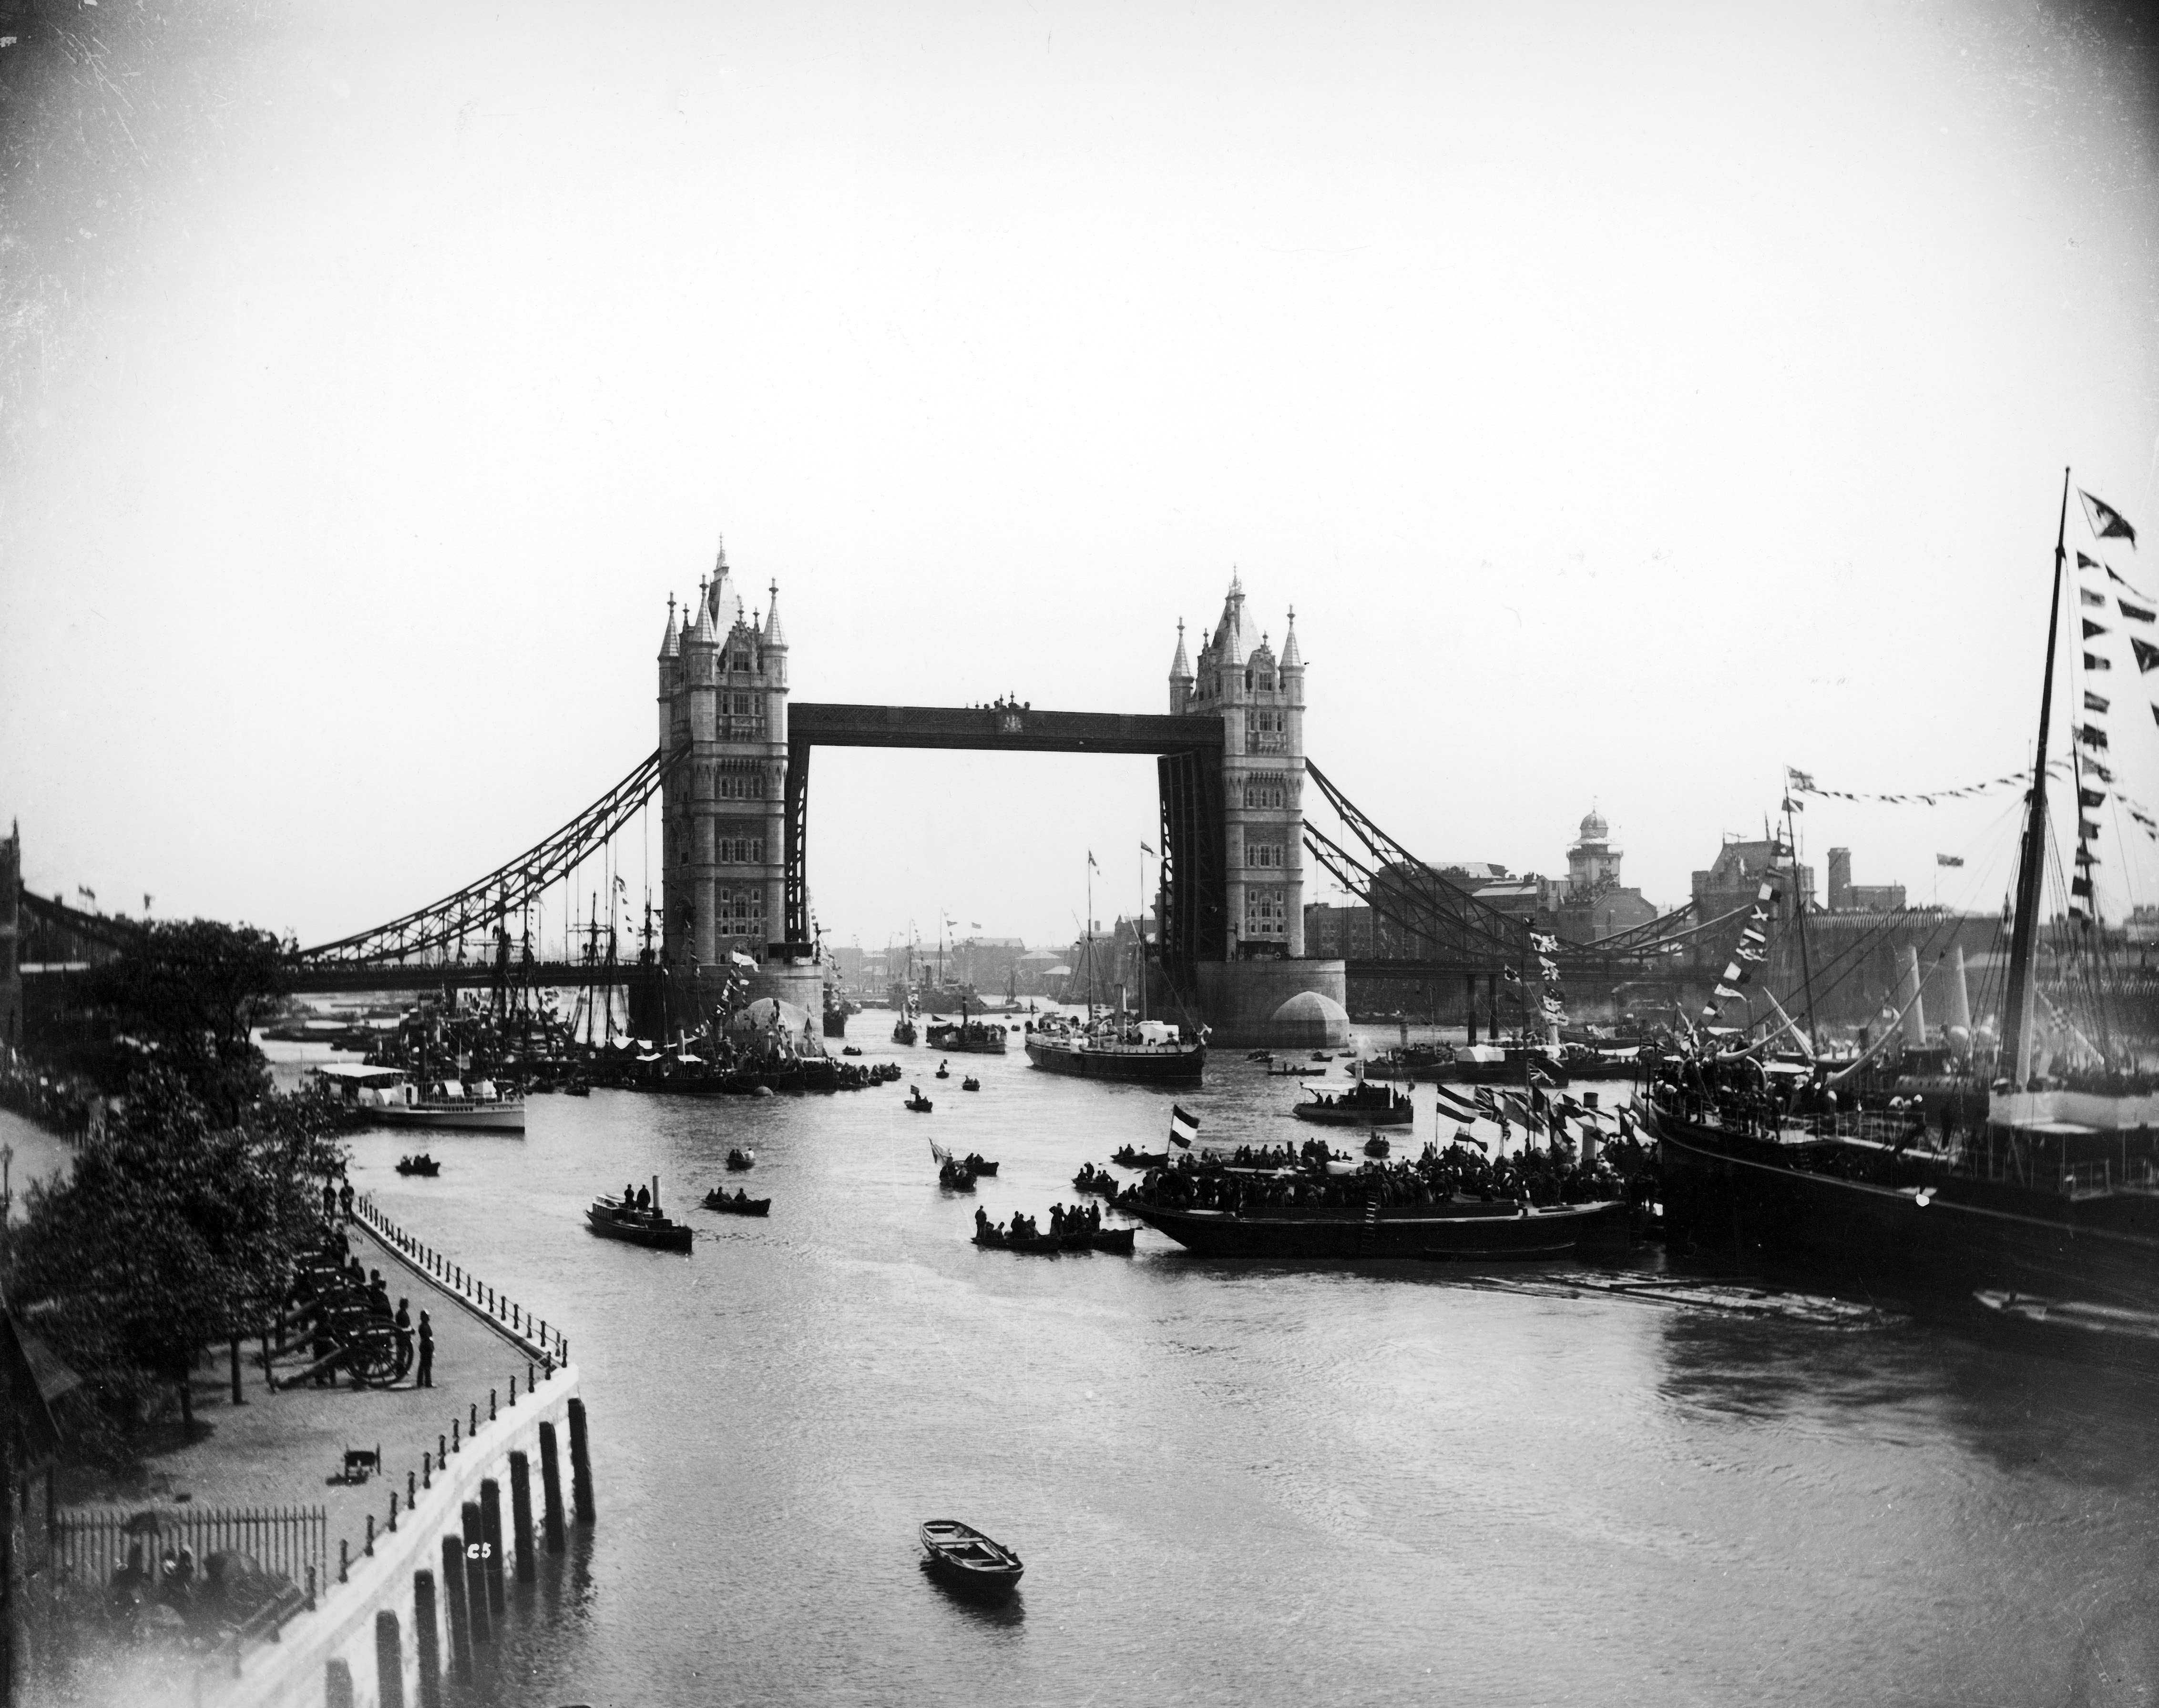 Slide 46 of 55: LONDON, ENGLAND - CIRCA 1894: Opening day for the brand new Tower Bridge. (Photo by Mansell/The LIFE Picture Collection/Getty Images)